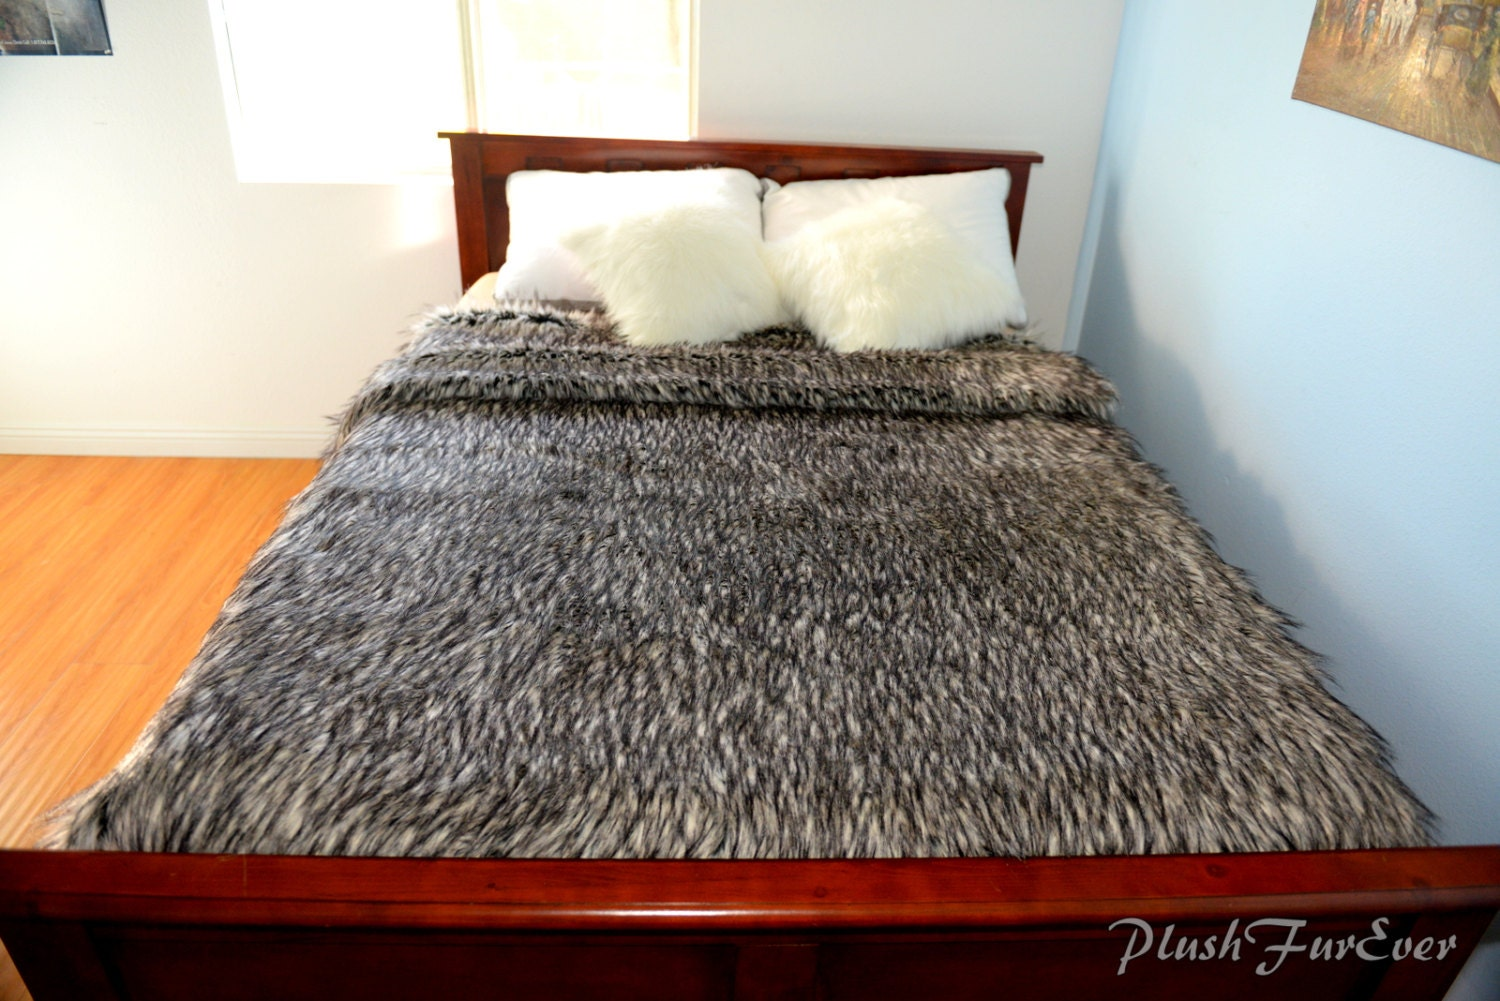 king queen twin bedspread multi gray wolf exotic blanket. Black Bedroom Furniture Sets. Home Design Ideas